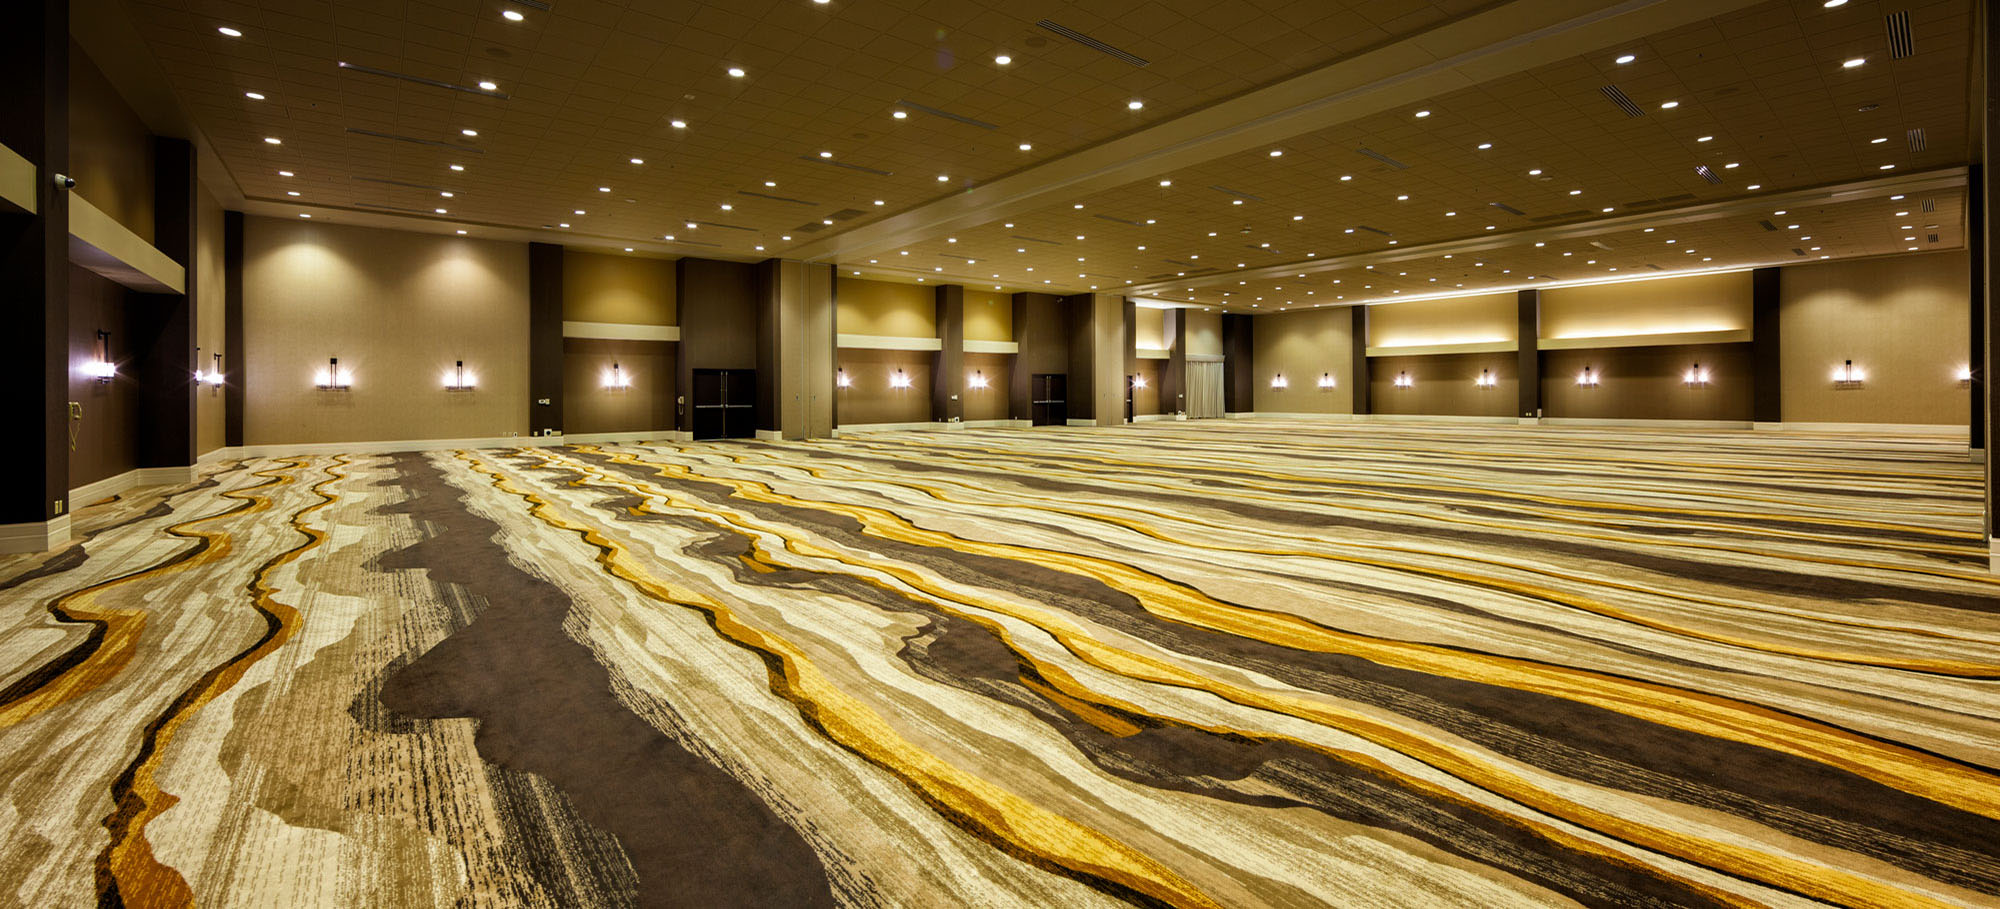 Highland ballroom featuring expansive space for meetings and events